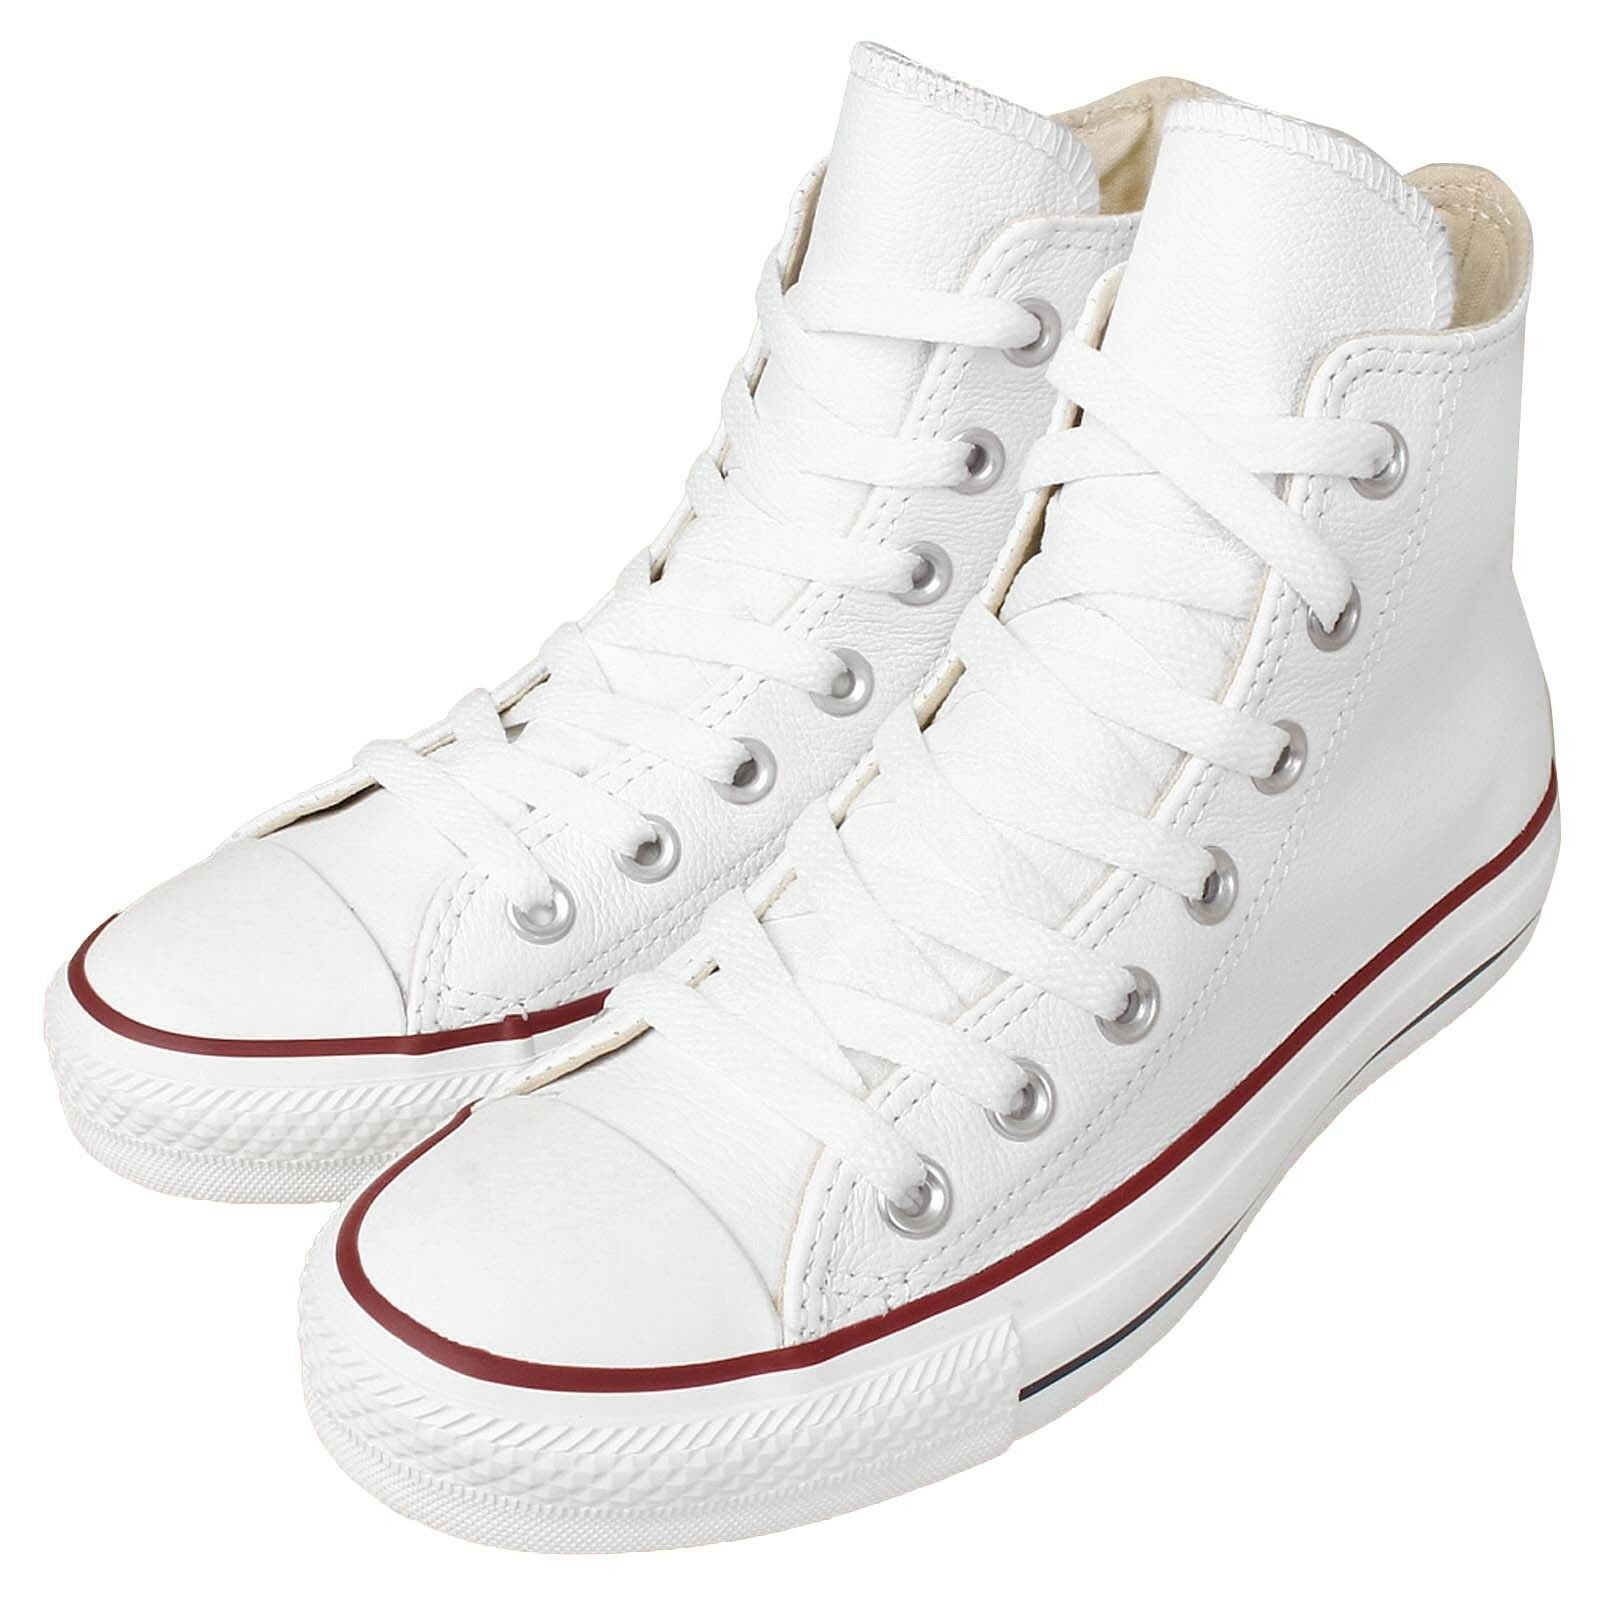 Converse All Chuck Taylor All Converse Star HI Blanco Leather Hombre Mujer Classic Zapatos  132169C ea8c8a